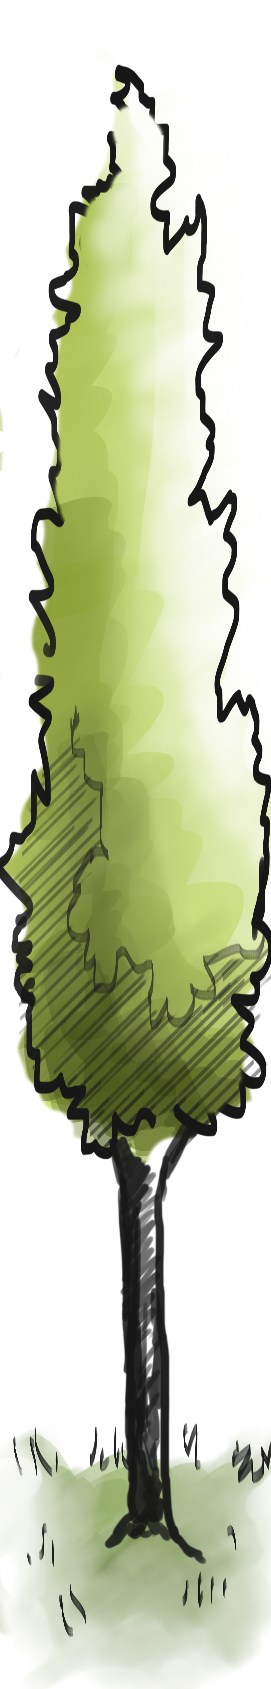 QUICKTREE.png